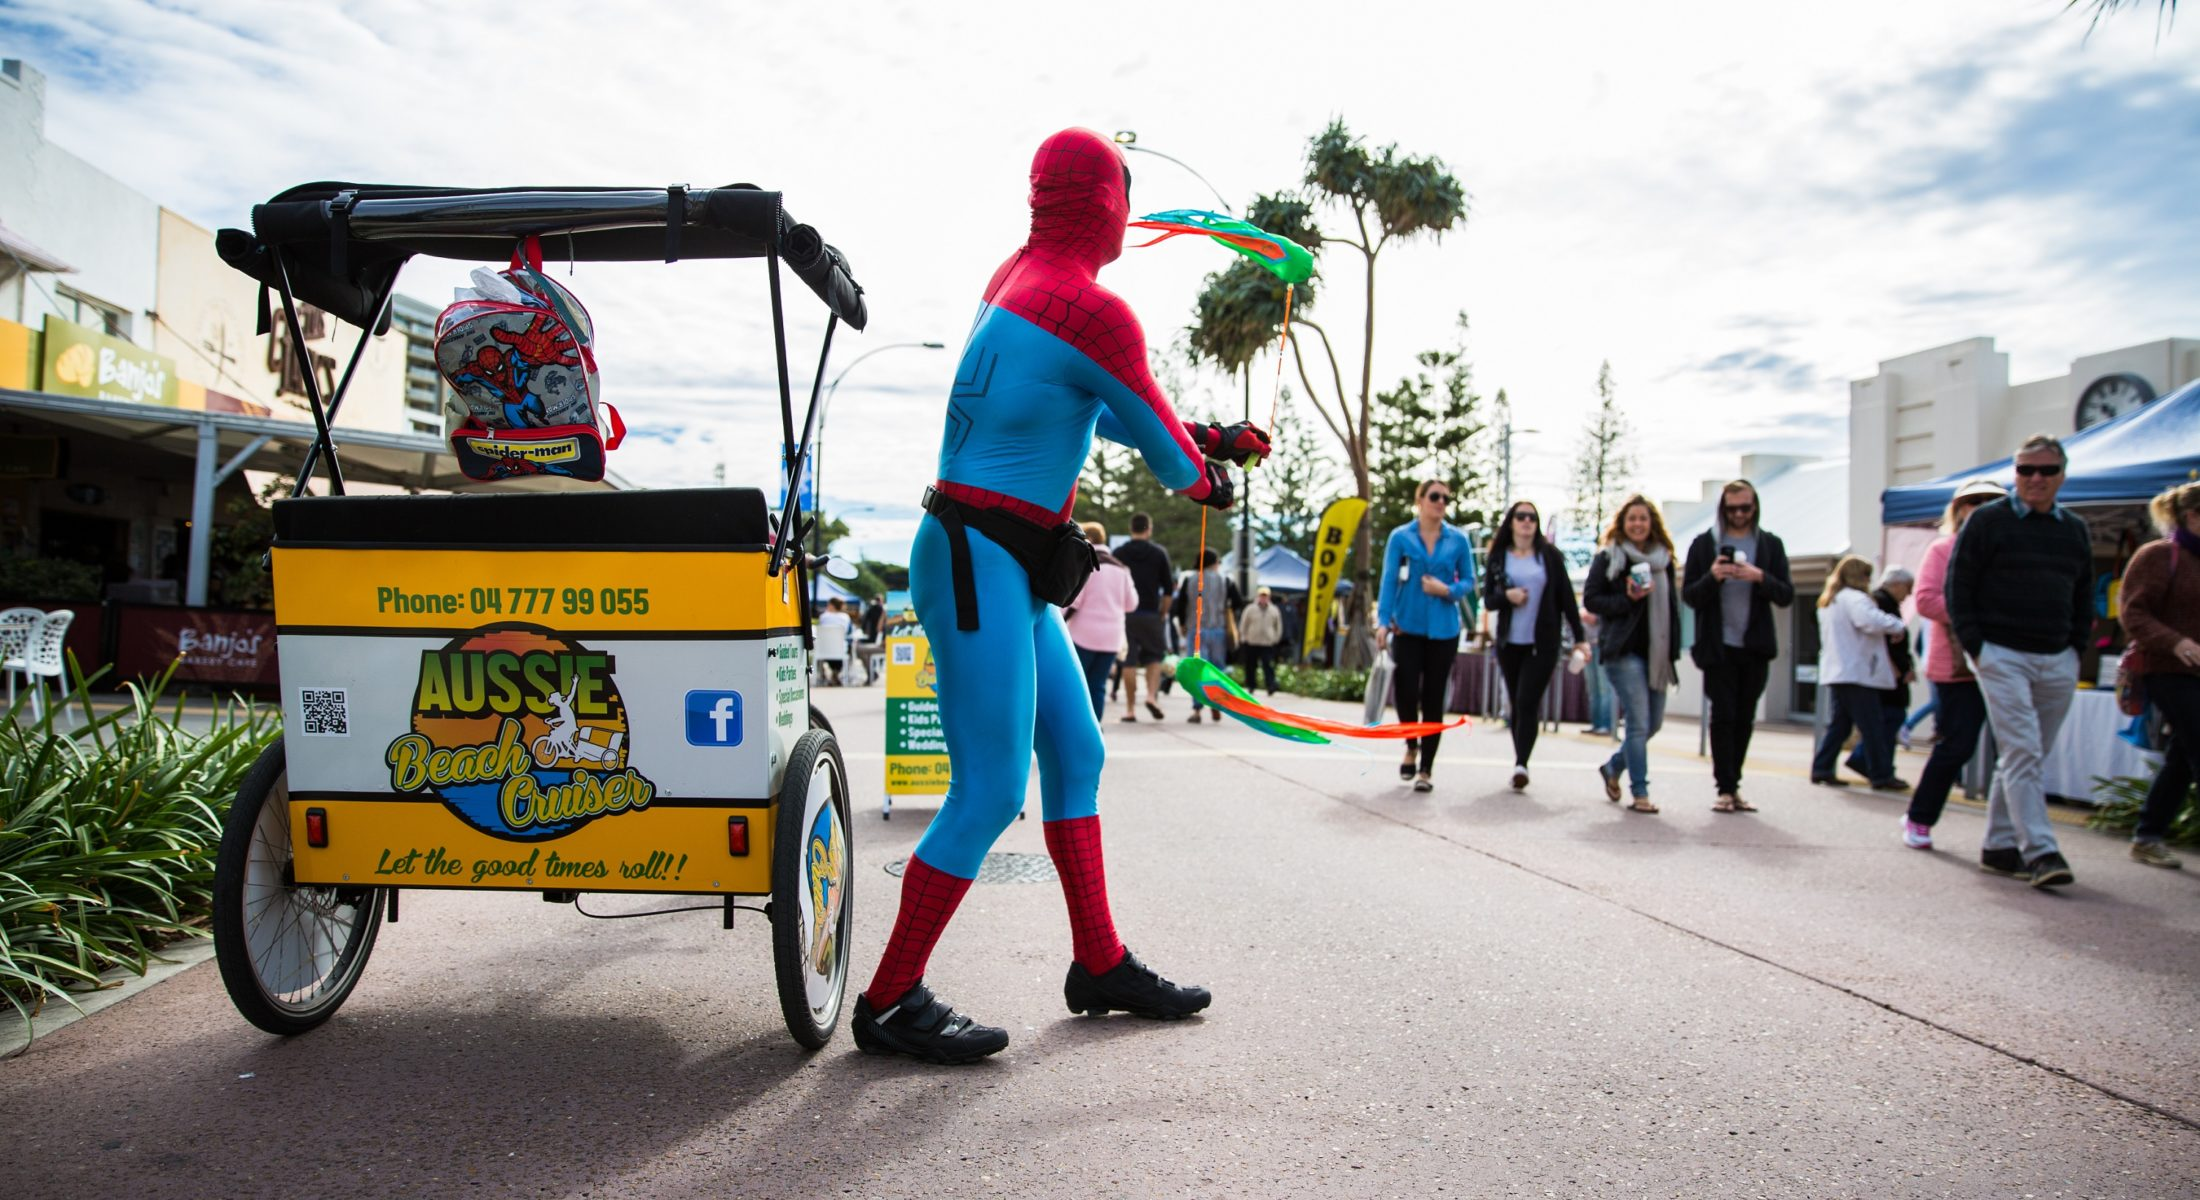 Redcliffe Markets Aussie Beach Cruiser Spiderman Moreton Bay Region